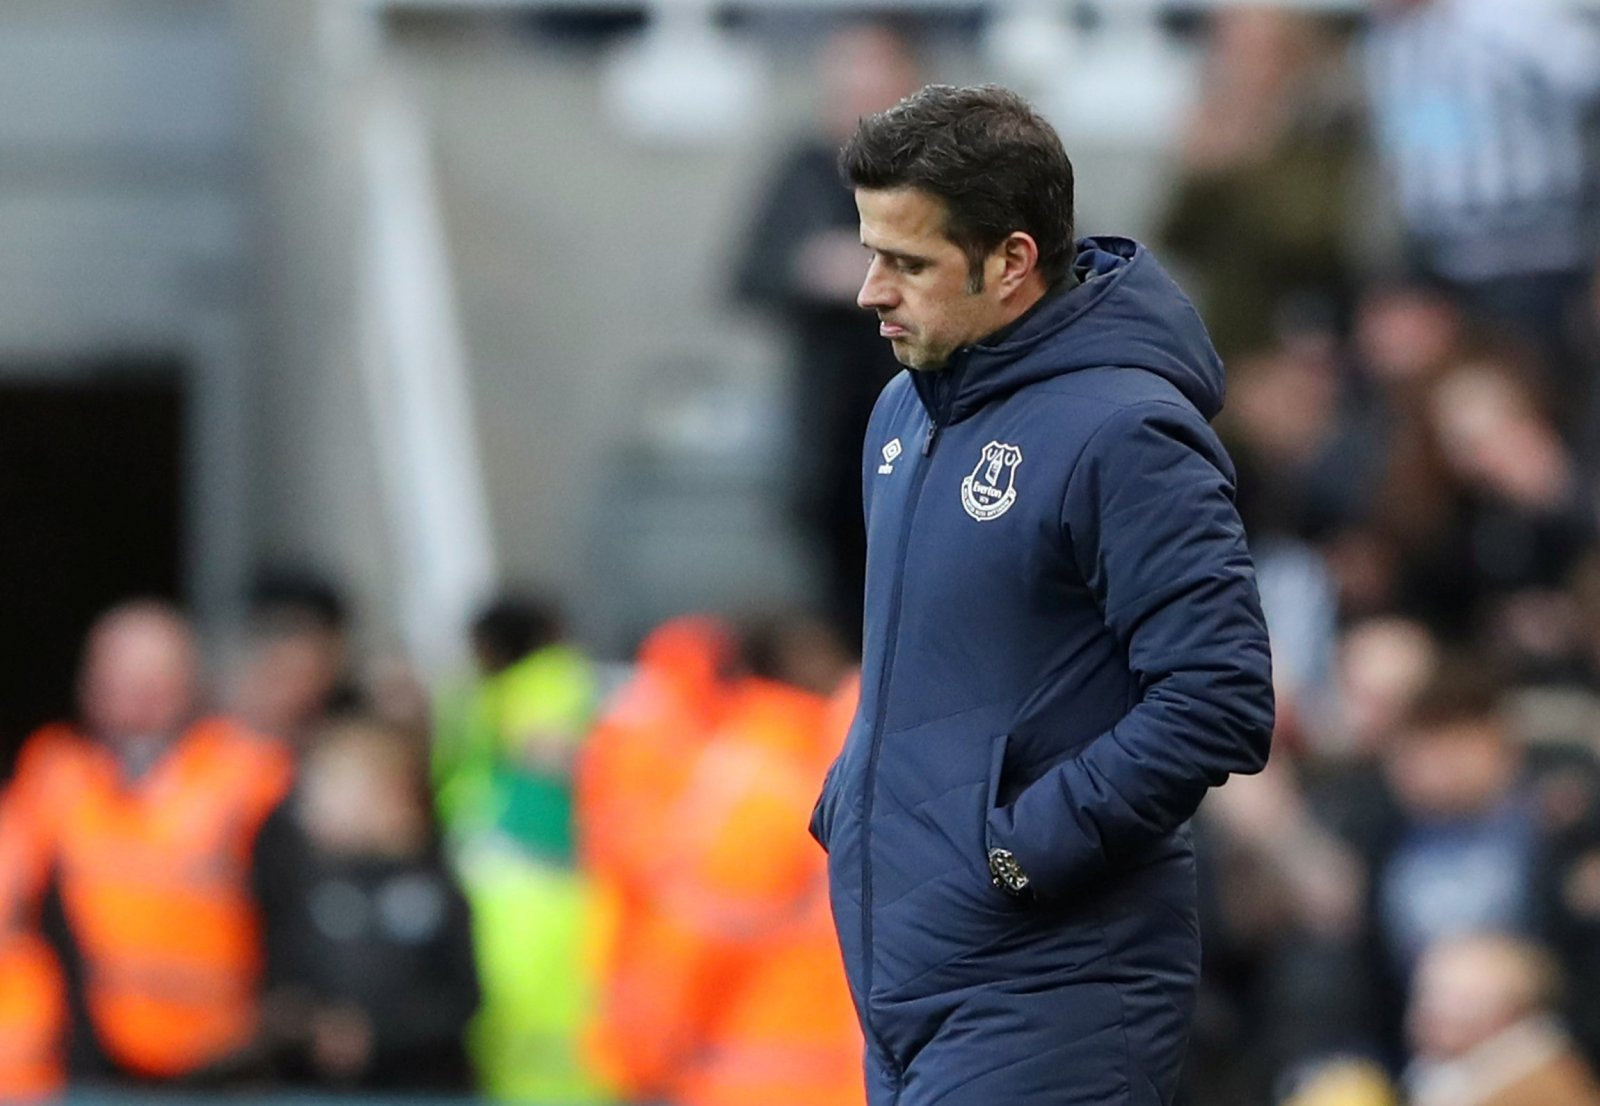 Everton: Marco Silva has done nothing to convince he's worthy of Everton role